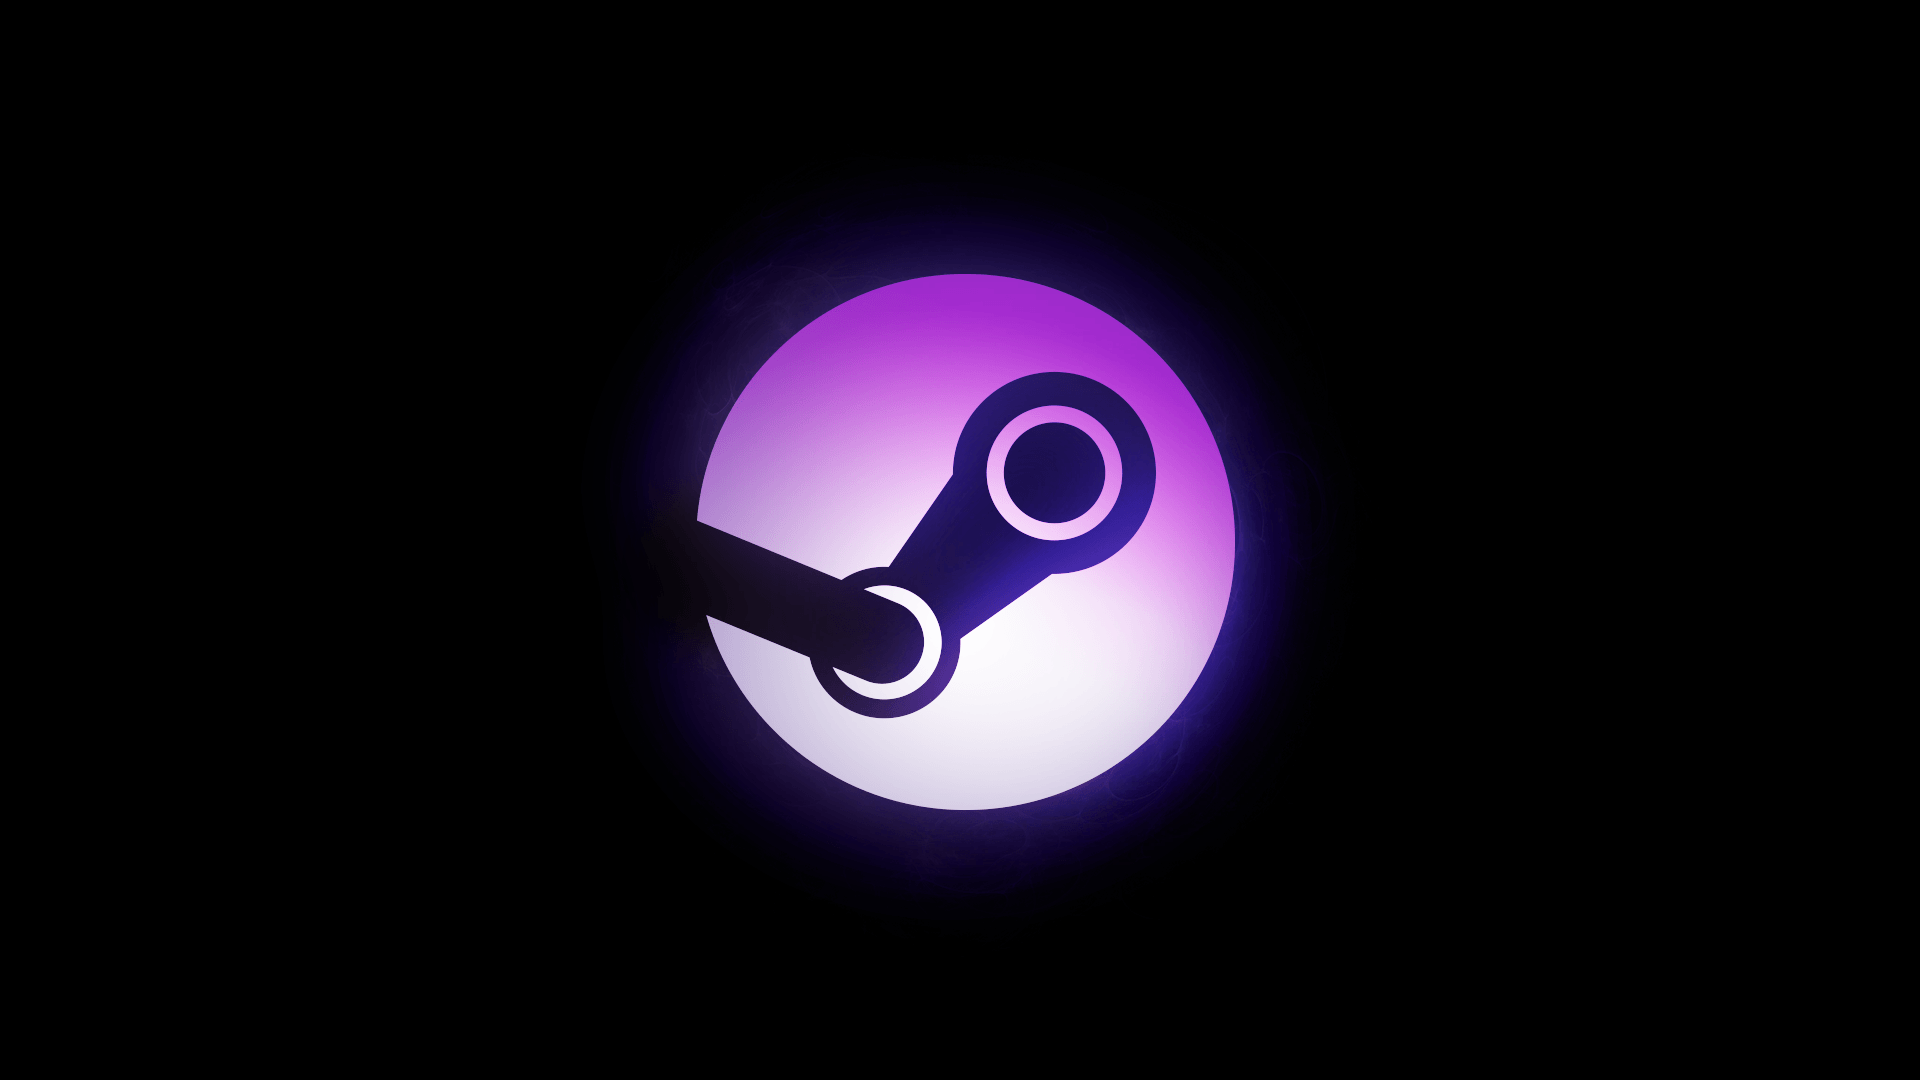 Get 2 new games for free thanks to Steam